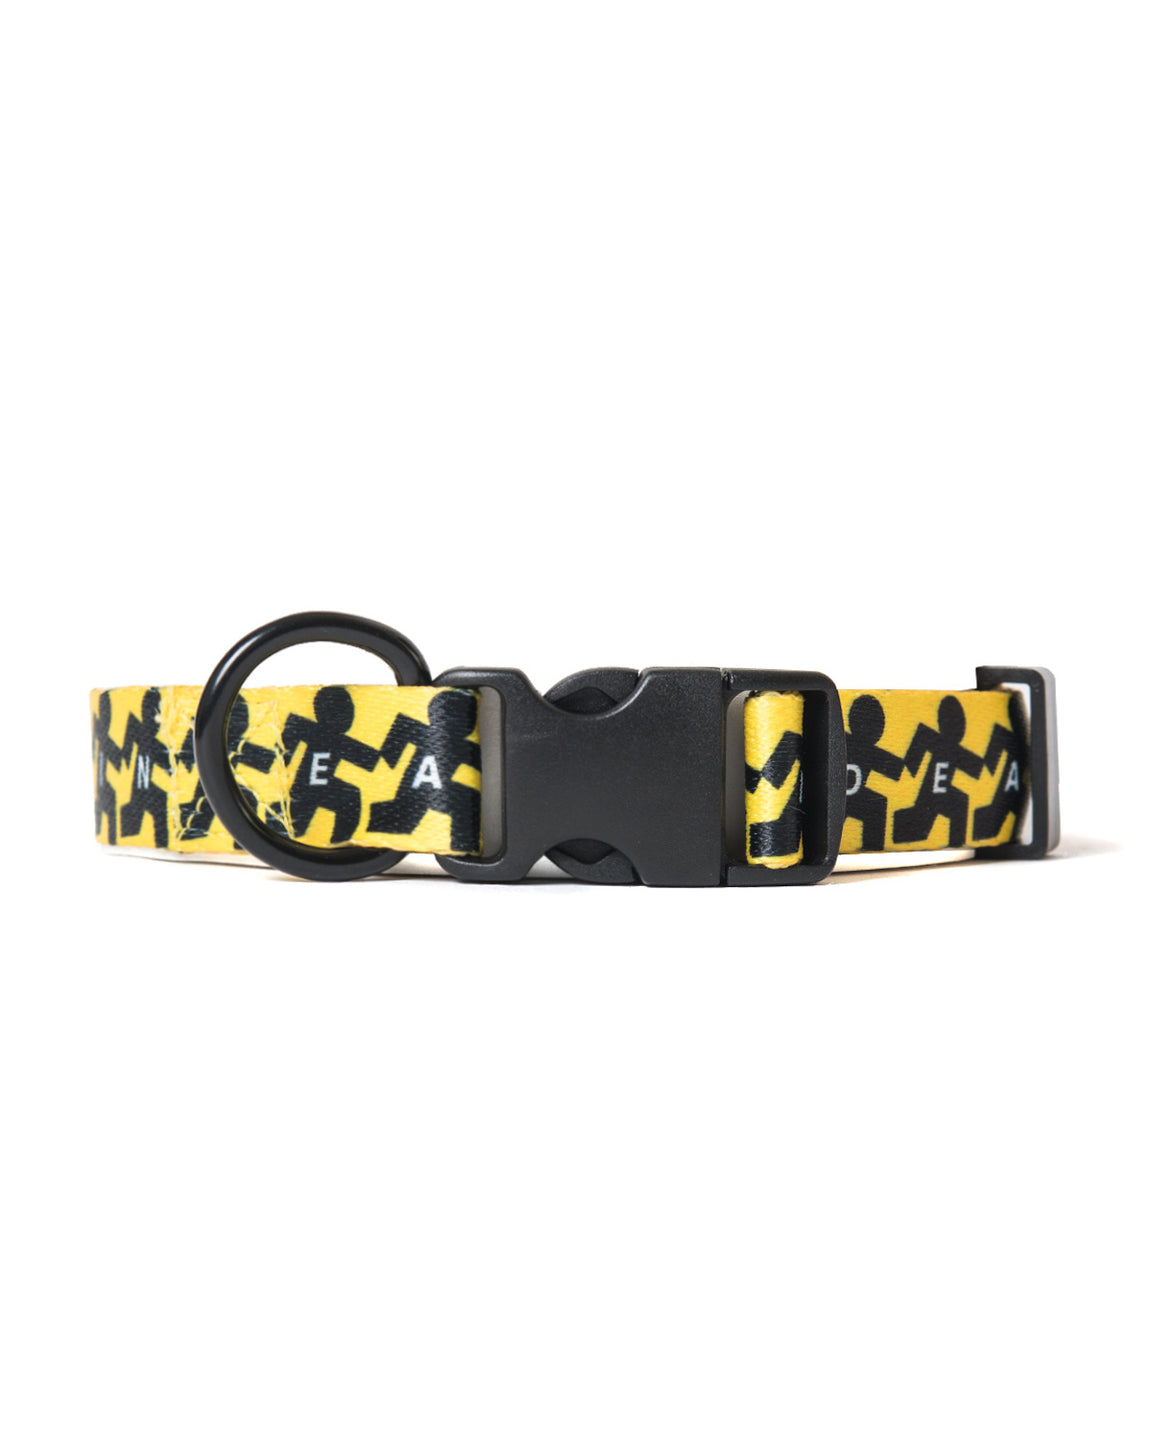 running man dog collar - brain dead equipment - front